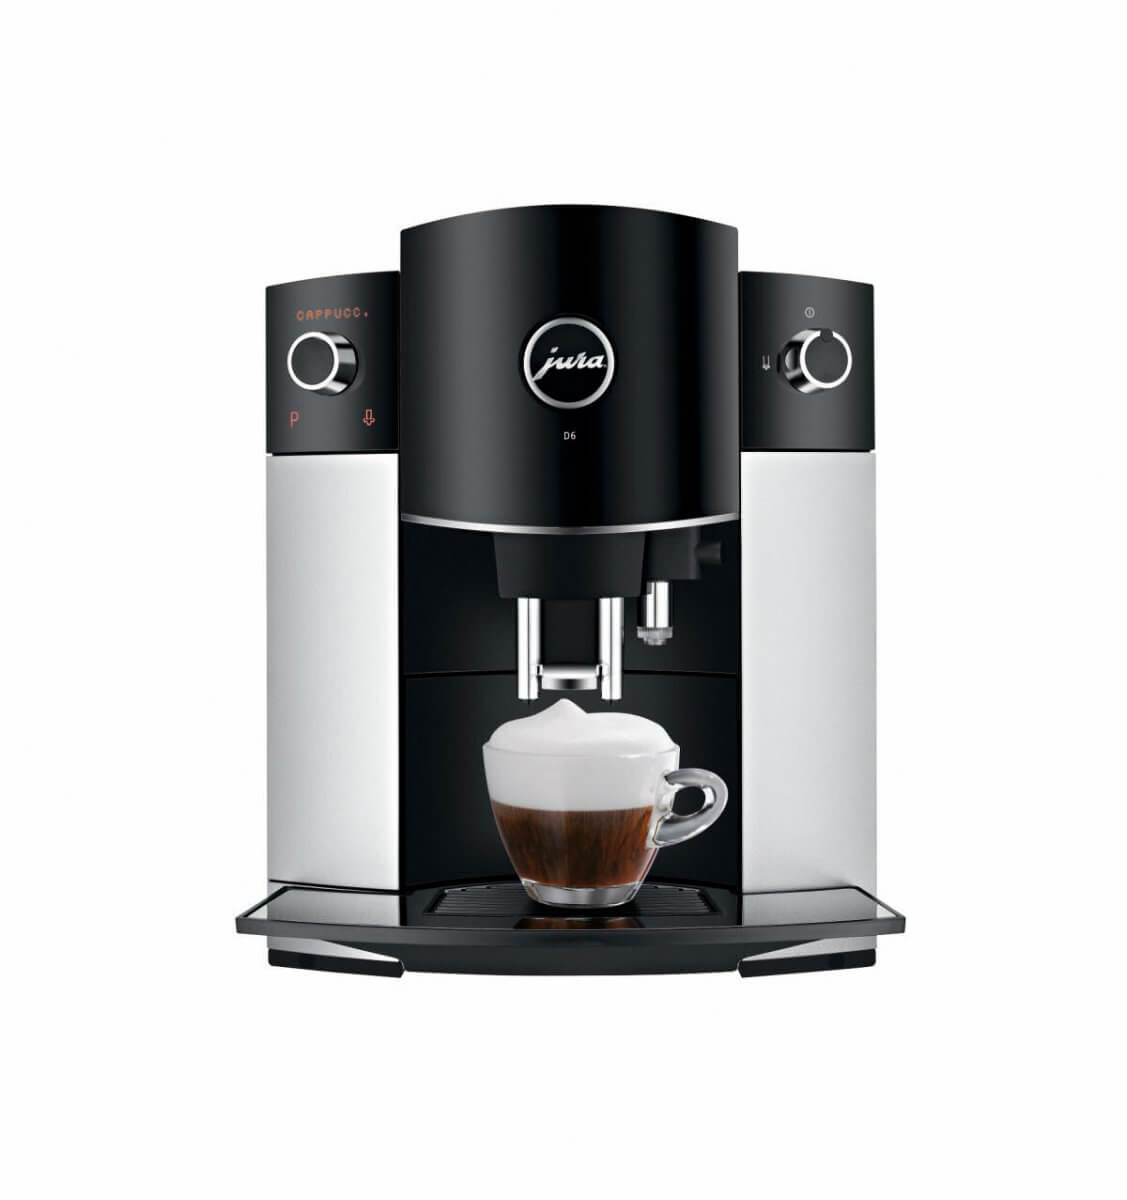 jura d6 machine cafe automoatique 15181 platine  2